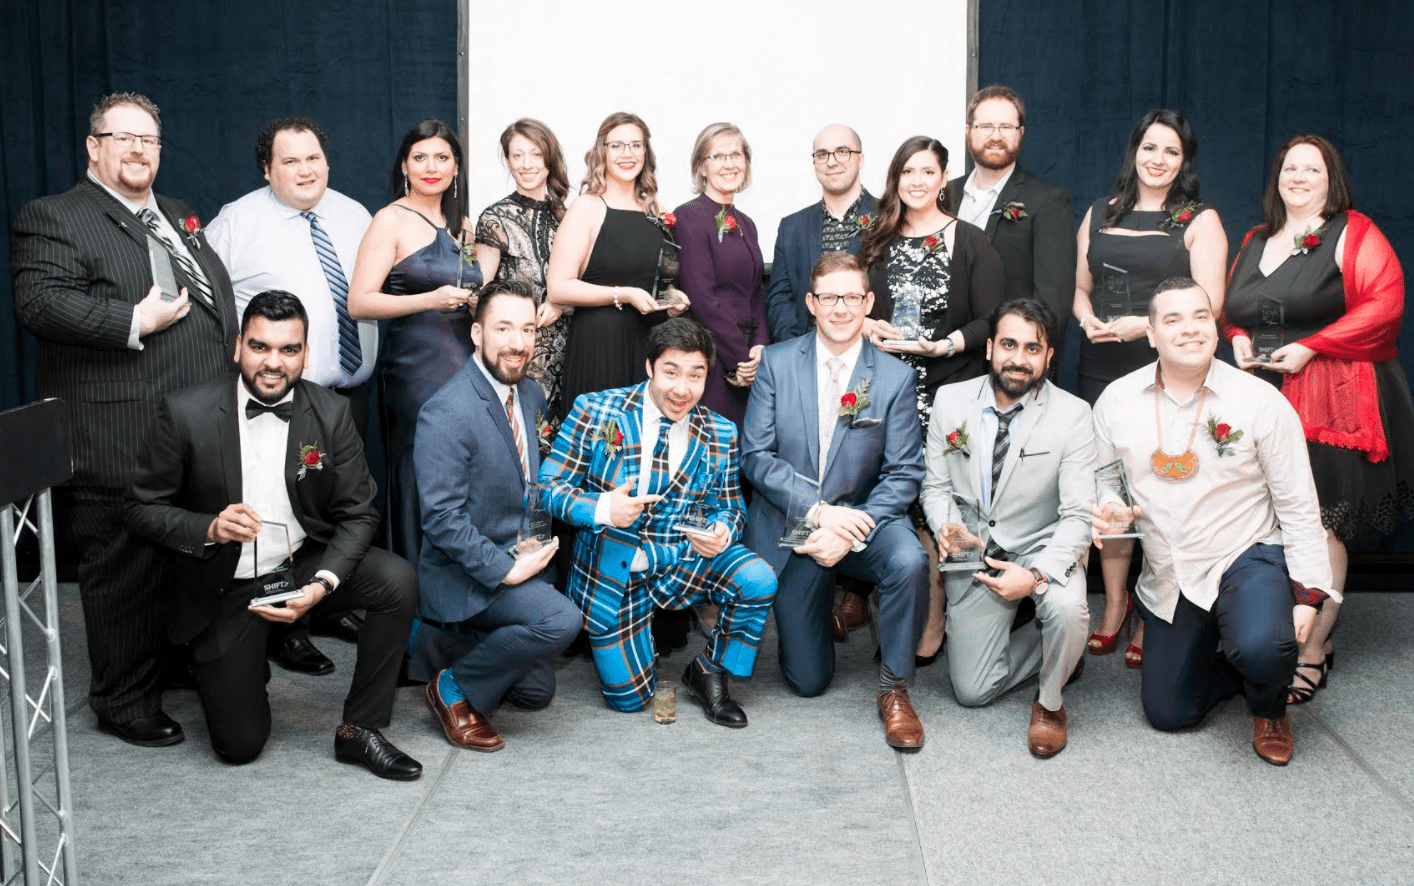 NWO's Top 20 Under 40 Recognized at the 2018 NOVAs